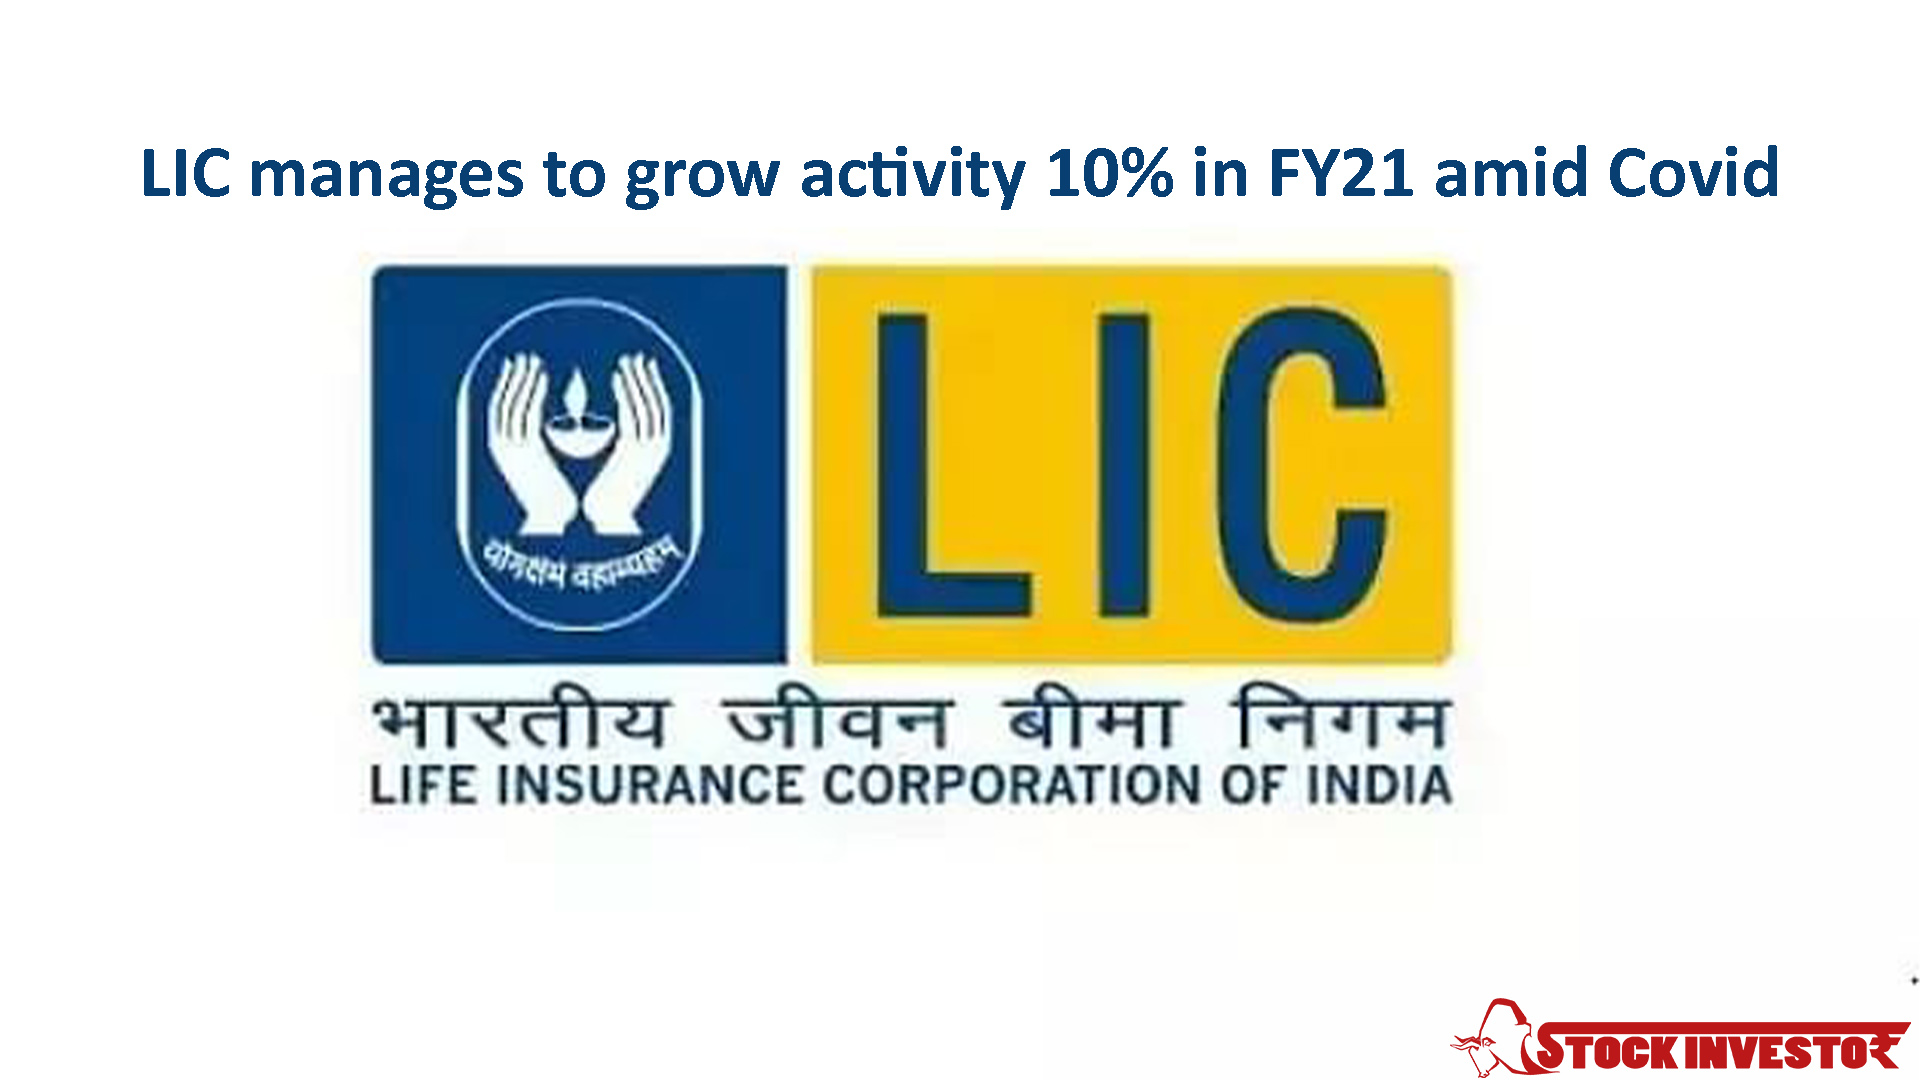 LIC manages to grow activity 10% in FY21 amid Covid